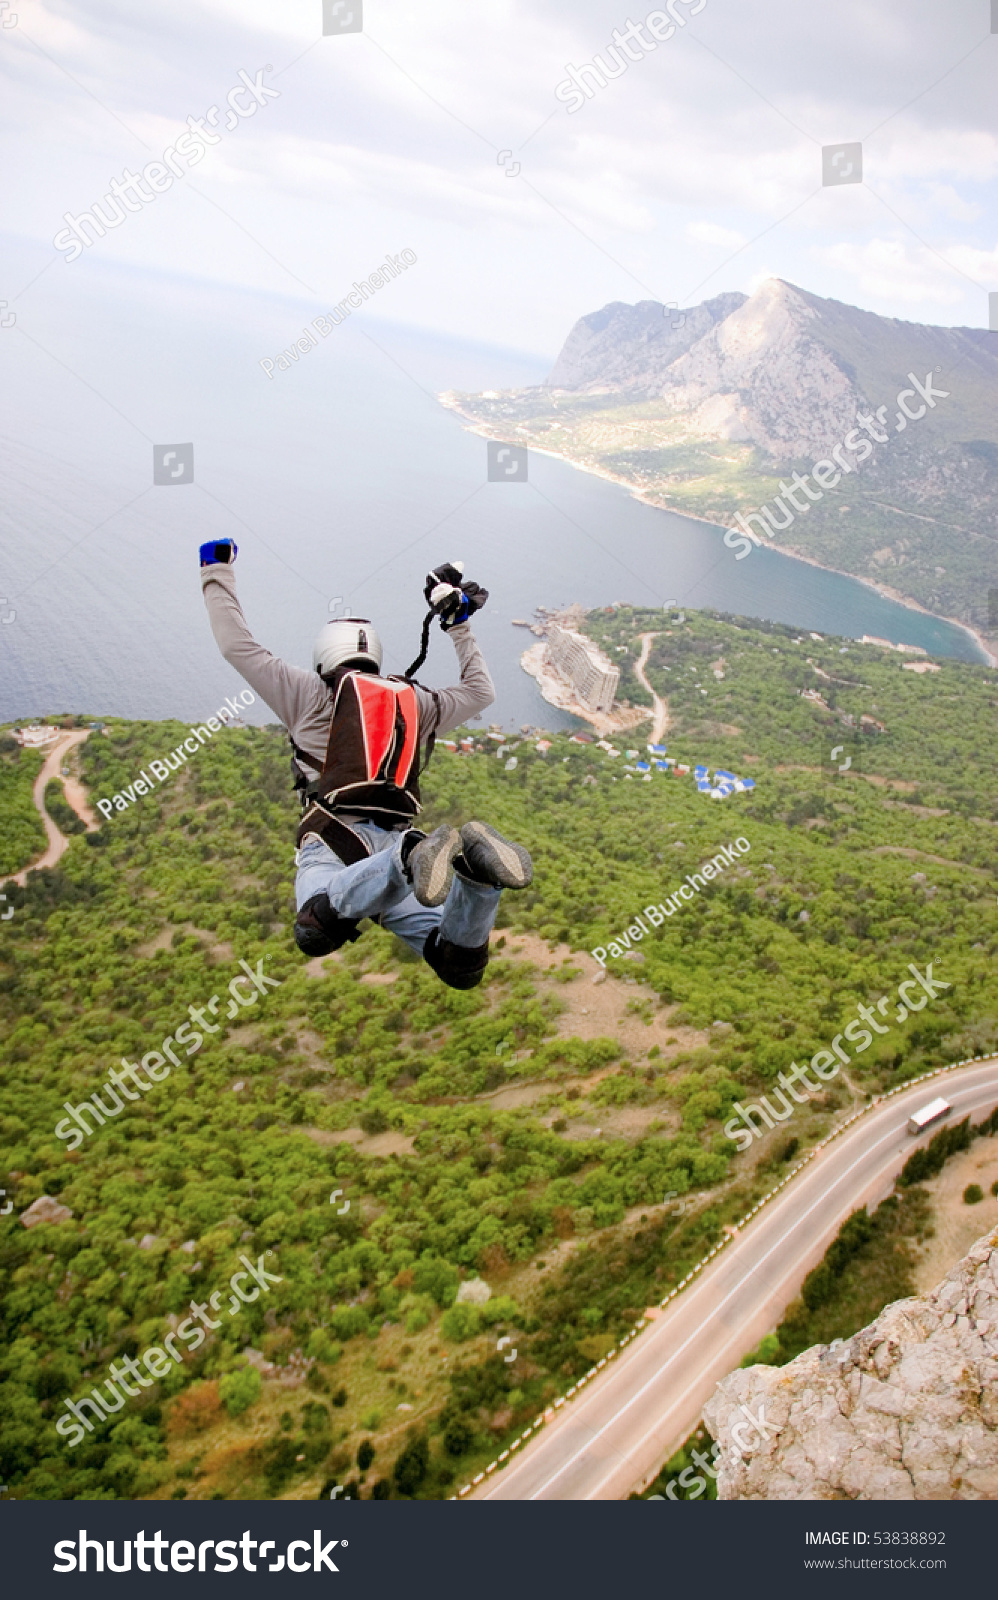 BASE Jump Off Cliff Stock Photo (Edit Now) 53838892